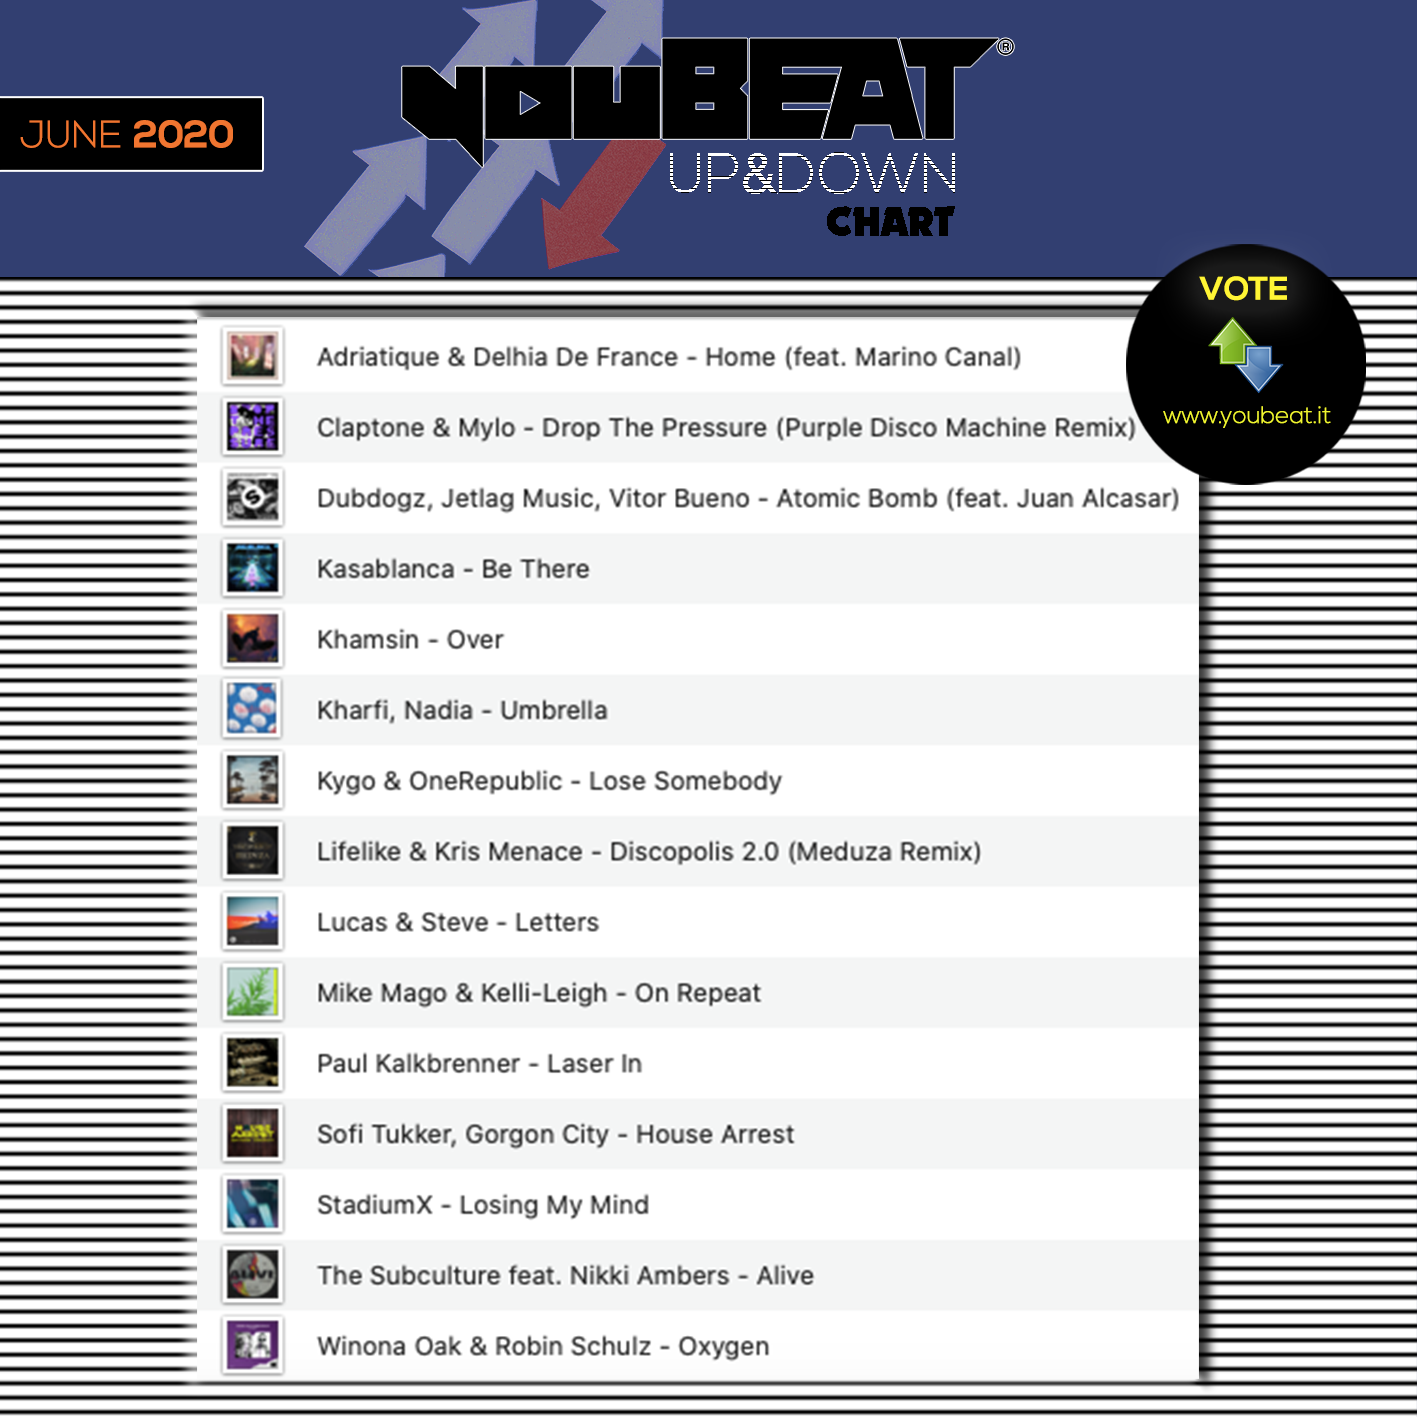 YouBeaT Up&Down chart list - June 2020